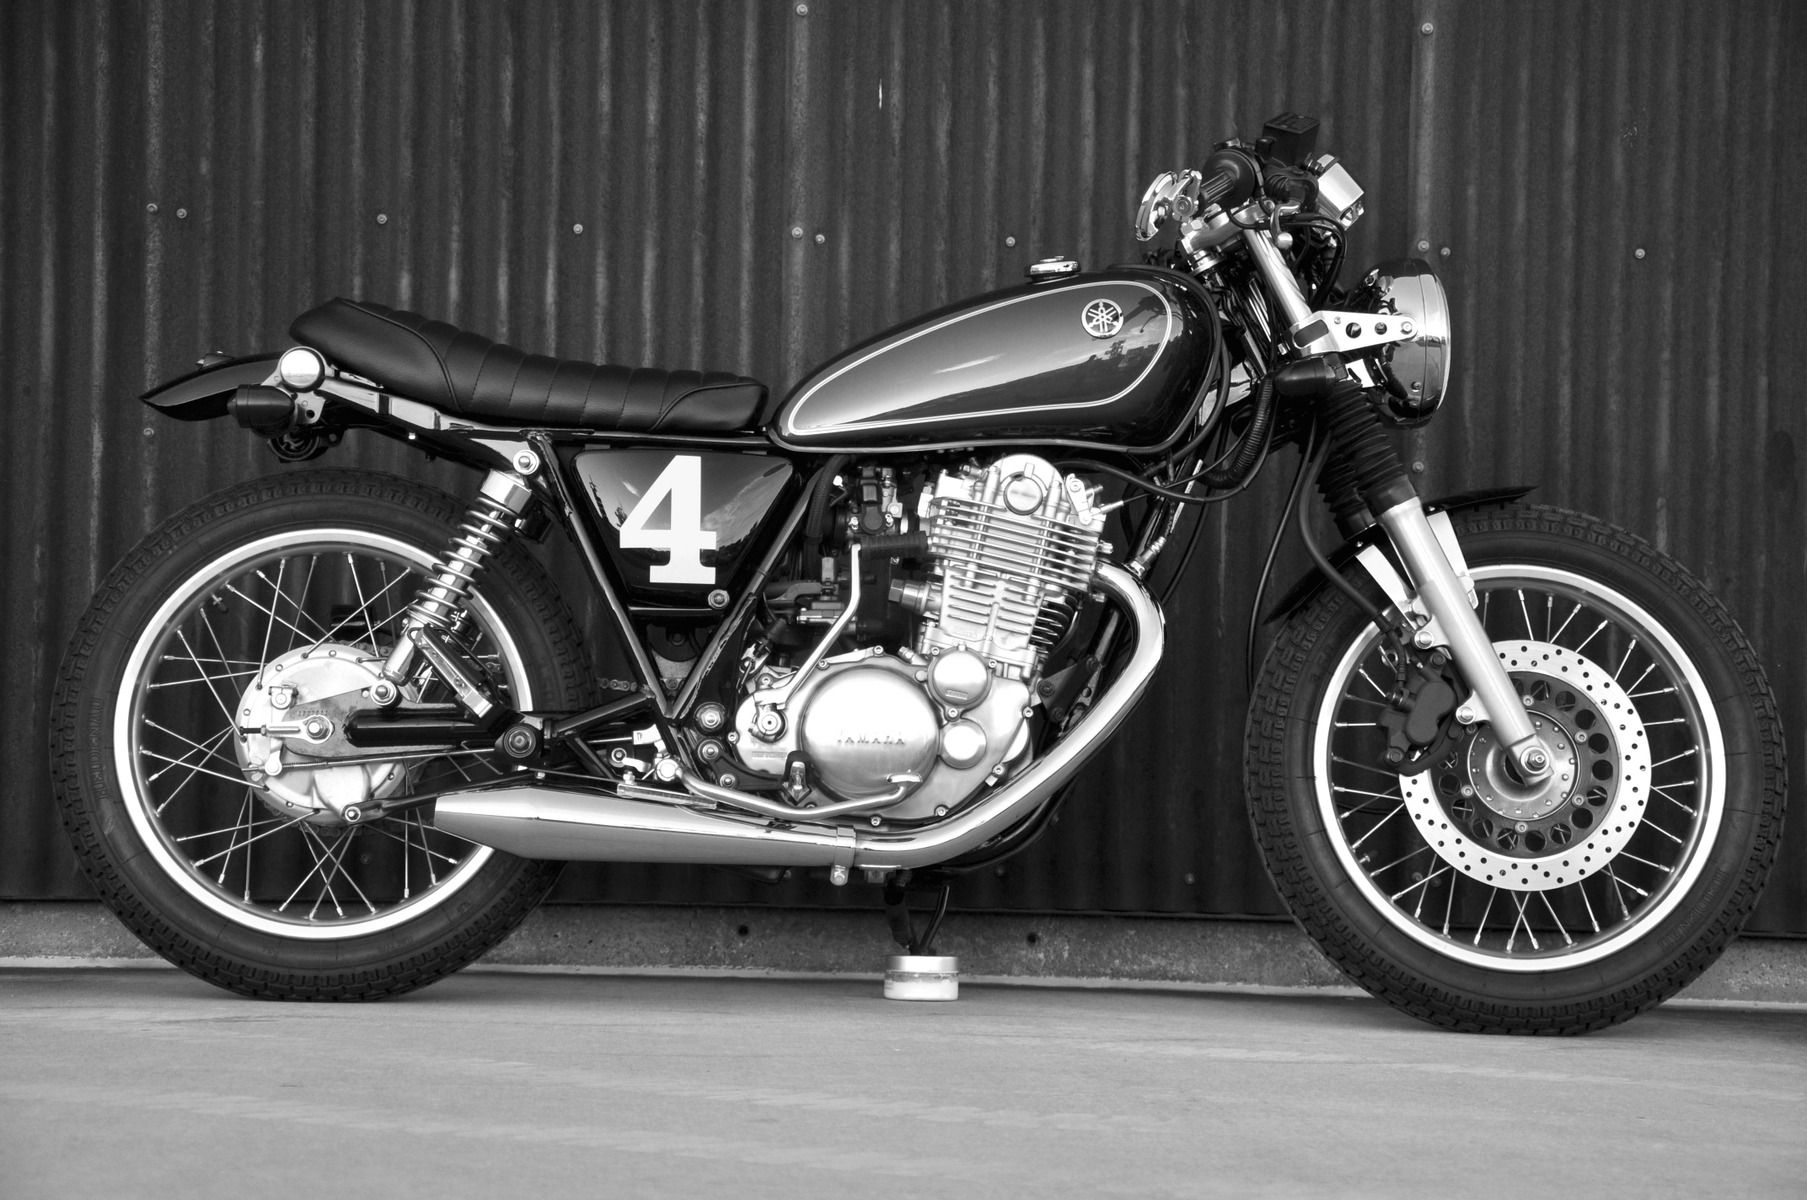 This Is A Cafe Racer Vintage Style Motorcycle The Builder Used A New Yamaha But Created A Vintage Look And Feel Cafe Racer Build Cafe Racer Bike